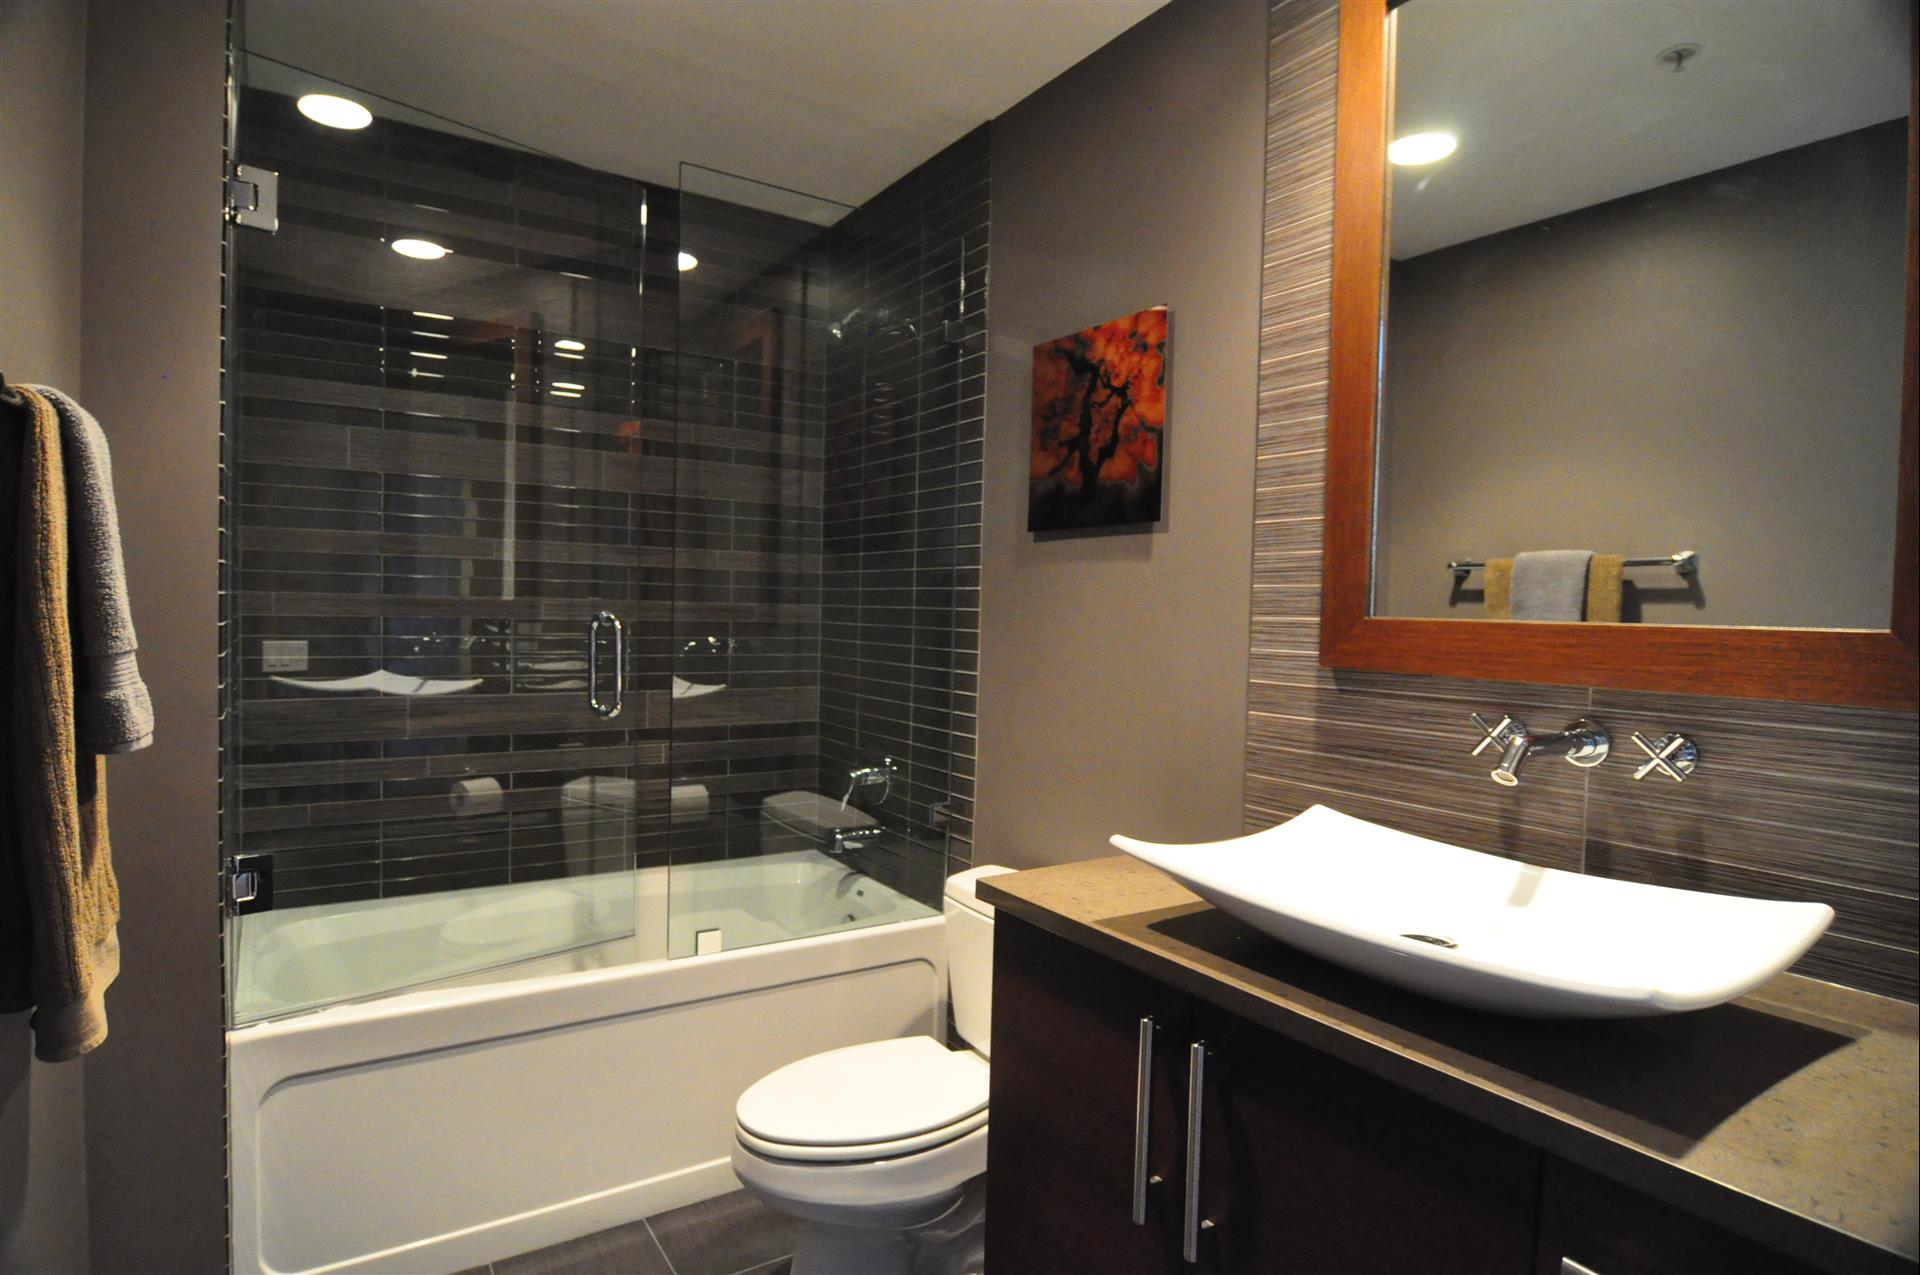 zen style bathroom remodel stratagem rh stratagemconstruction com zen bathroom remodel ideas Zen Shower